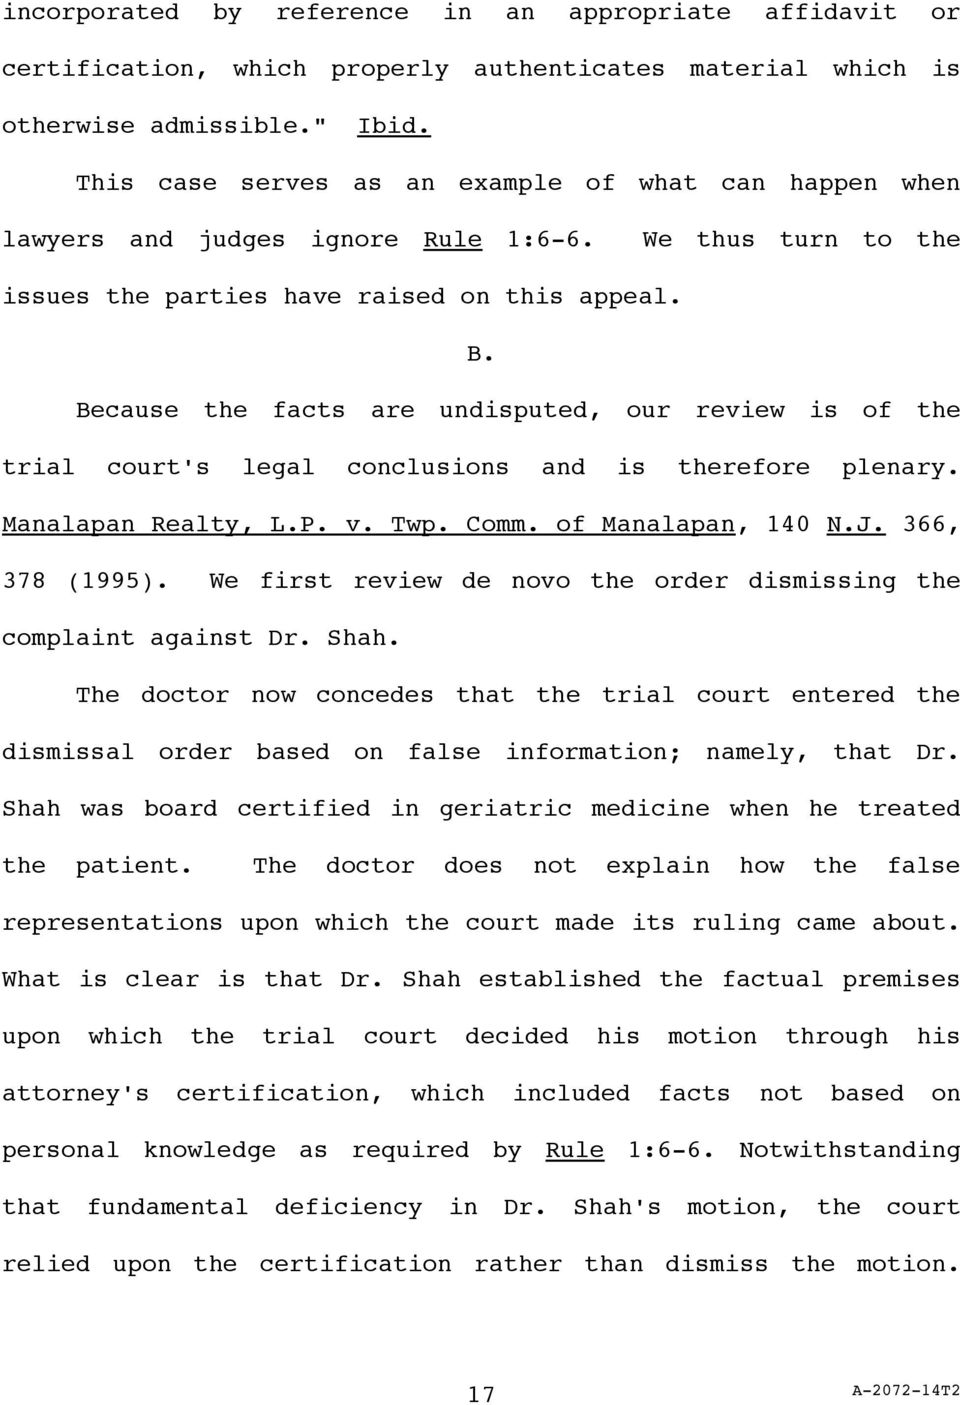 Because the facts are undisputed, our review is of the trial court's legal conclusions and is therefore plenary. Manalapan Realty, L.P. v. Twp. Comm. of Manalapan, 140 N.J. 366, 378 (1995).